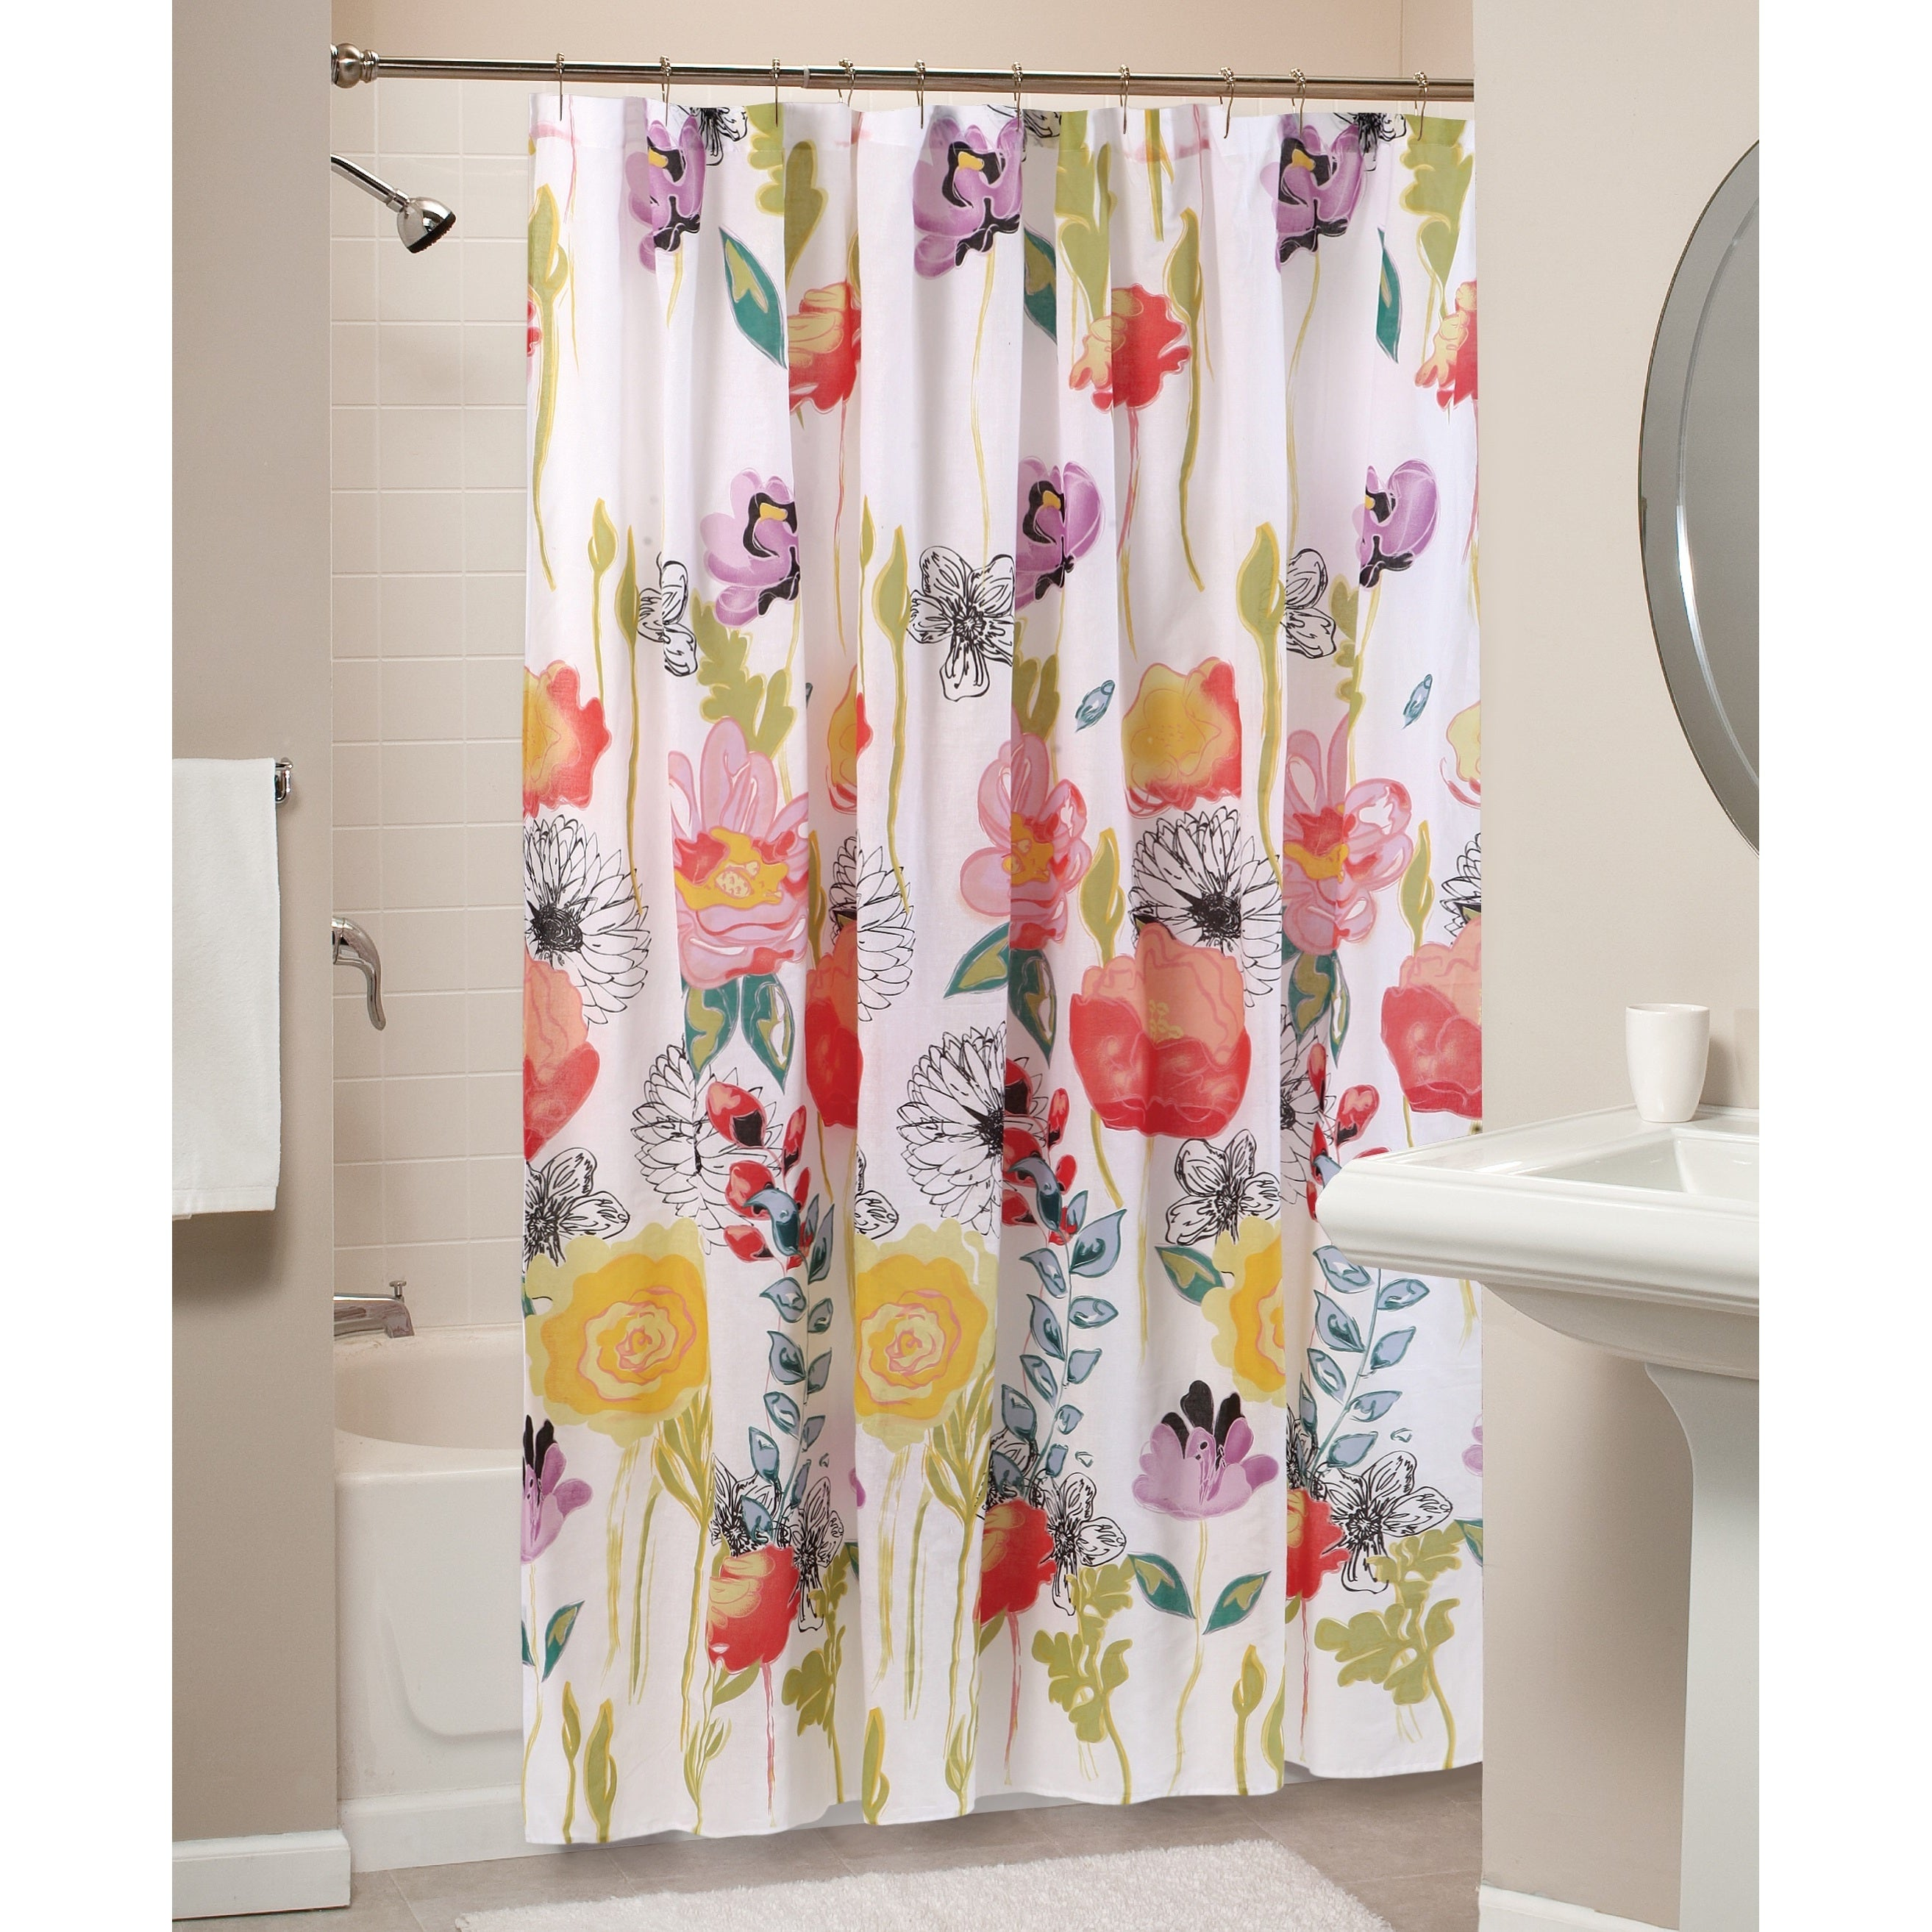 Shop Greenland Home Fashions Watercolor Dream Shower Curtain